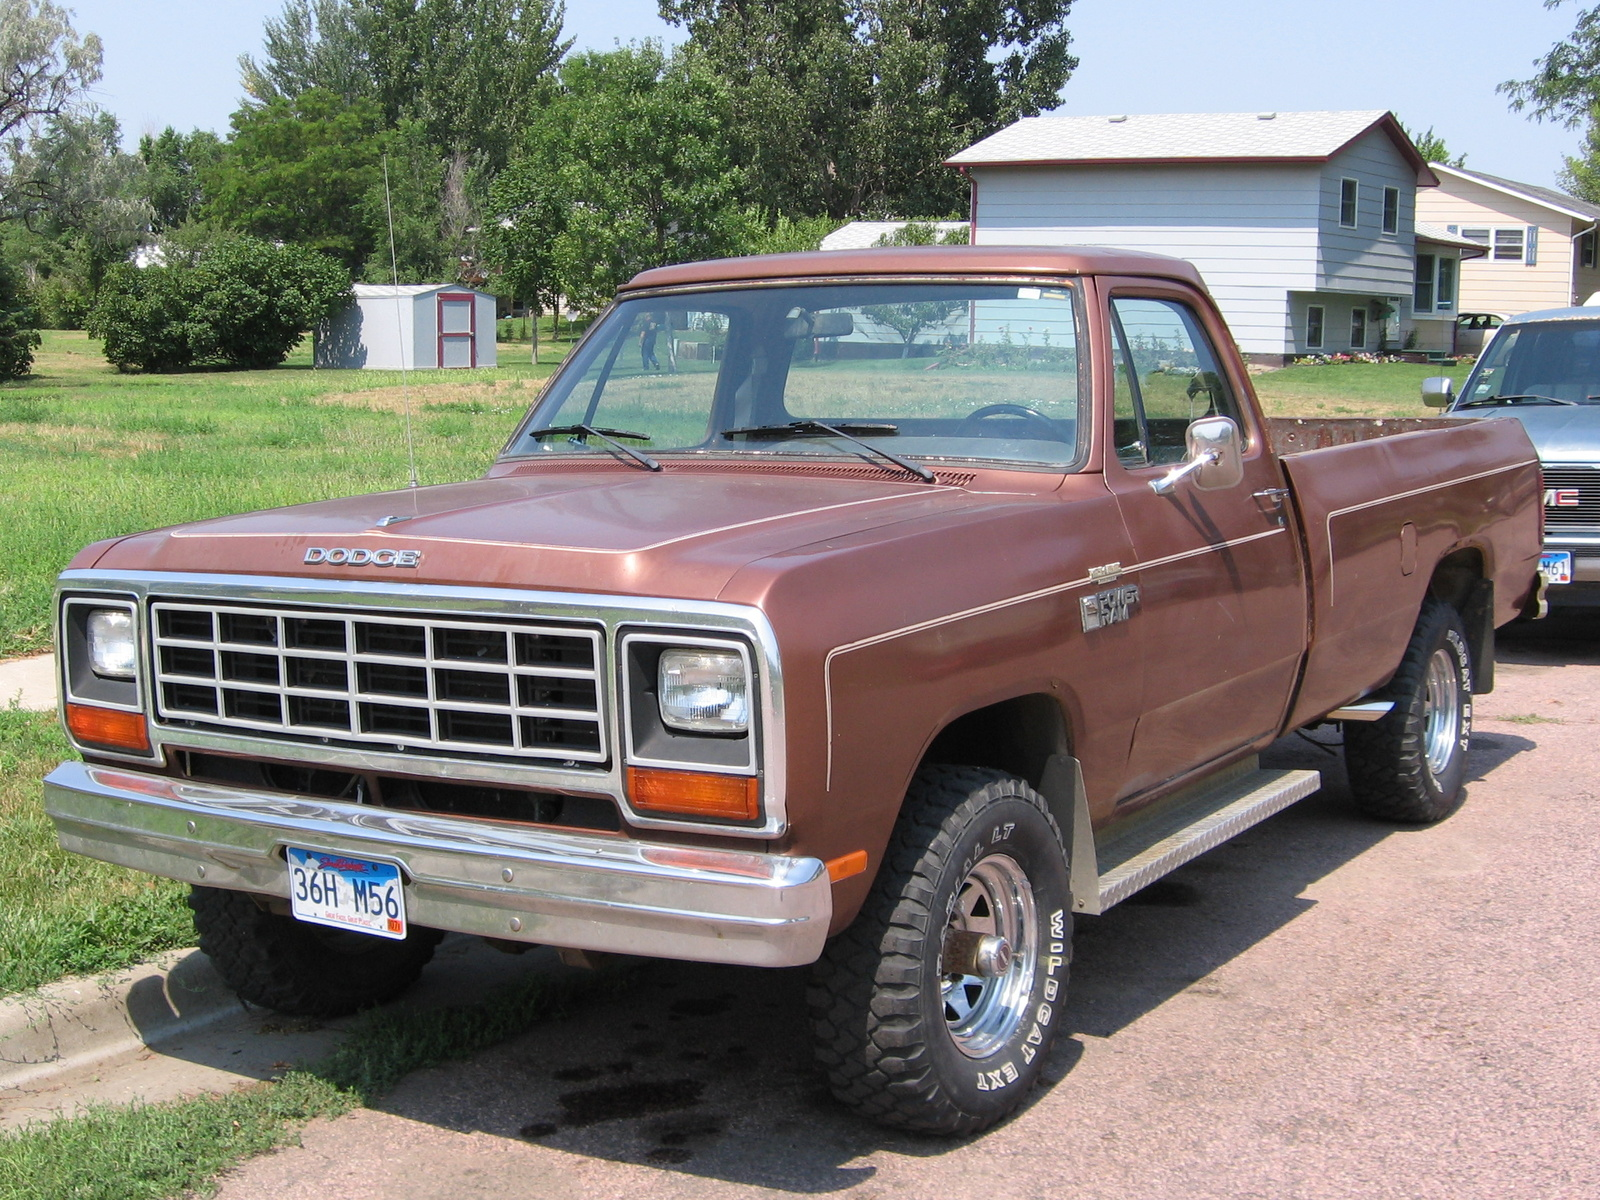 1984 Dodge Power Ram 50 Pictures to Pin on Pinterest  PinsDaddy